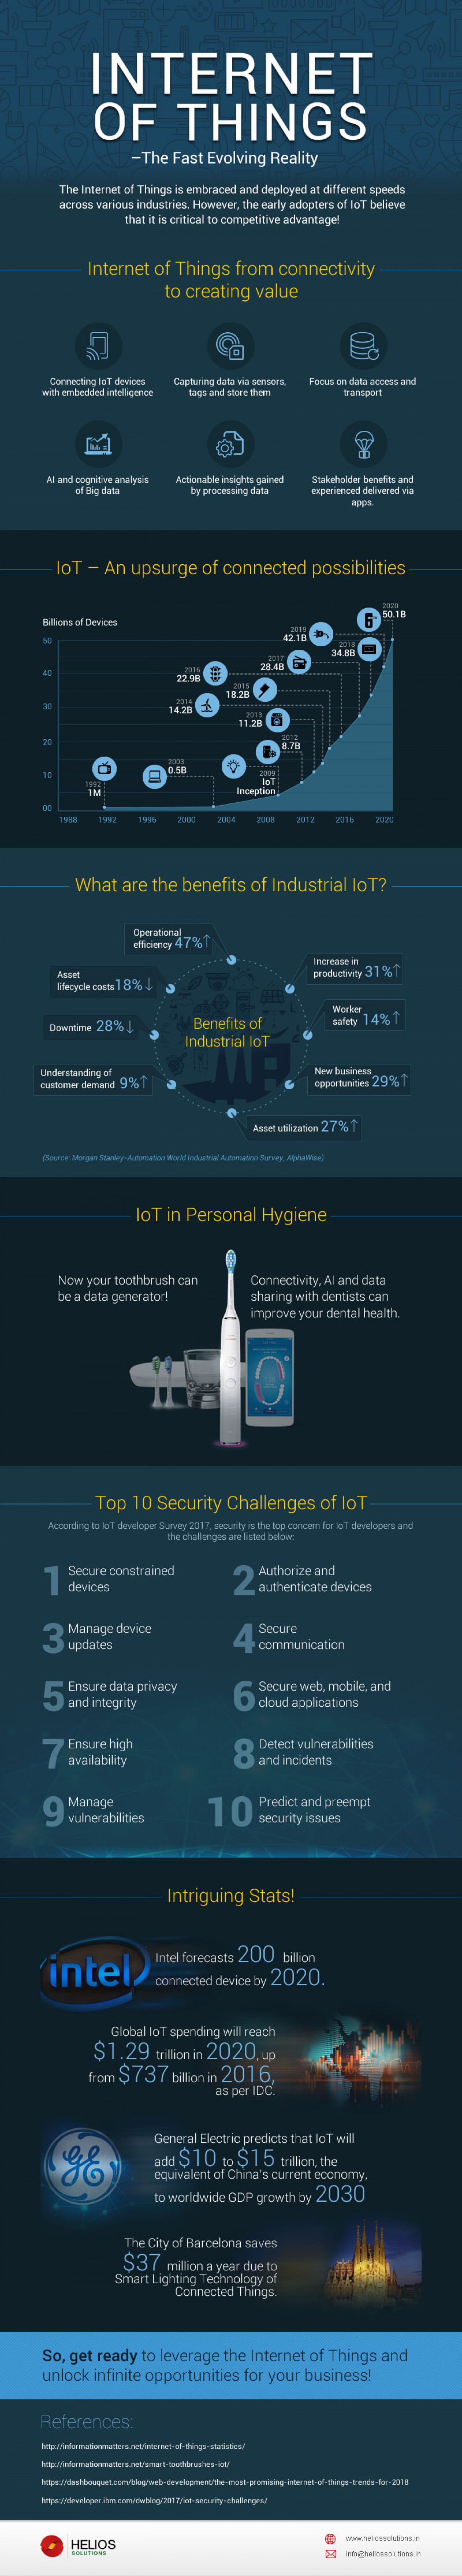 Internet of Things – the Fast Evolving Reality Infographic